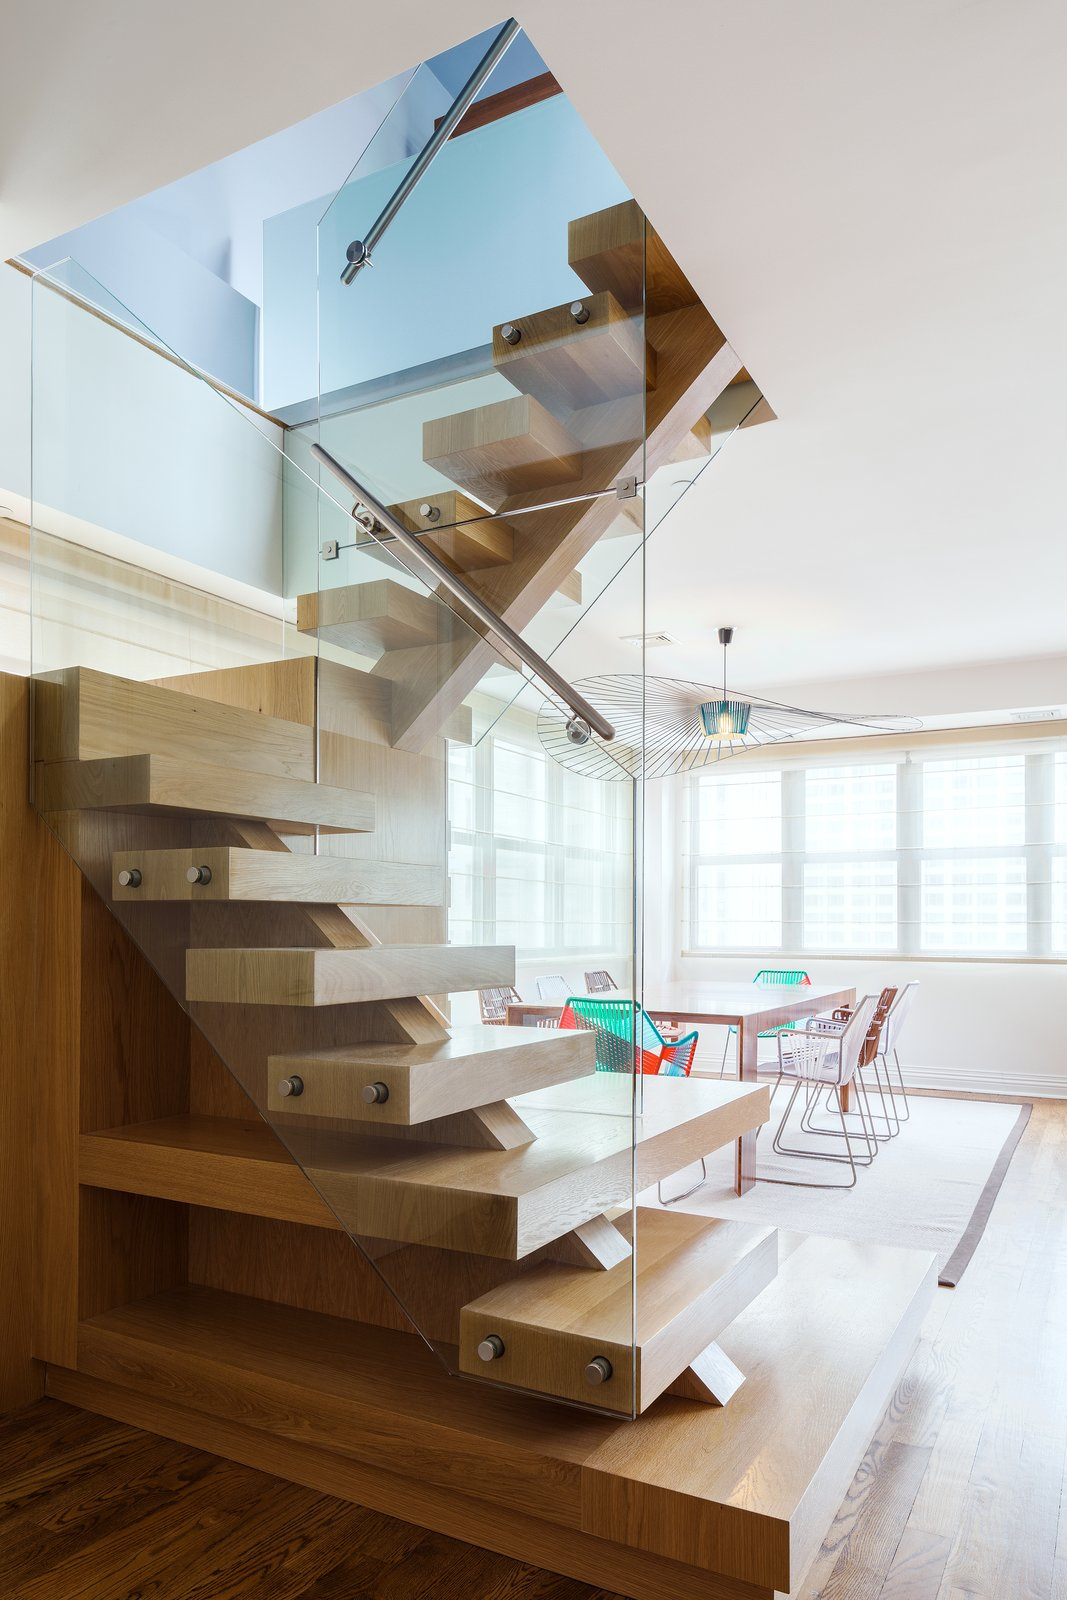 Reddy swapped out the spiral iron staircase for a modern wood one protected by glass walls. Tagged: Staircase, Wood Tread, and Metal Railing.  Lovely NYC Abodes That Will Give You Apartment Envy by Allie Weiss from Super Sleek Staircases